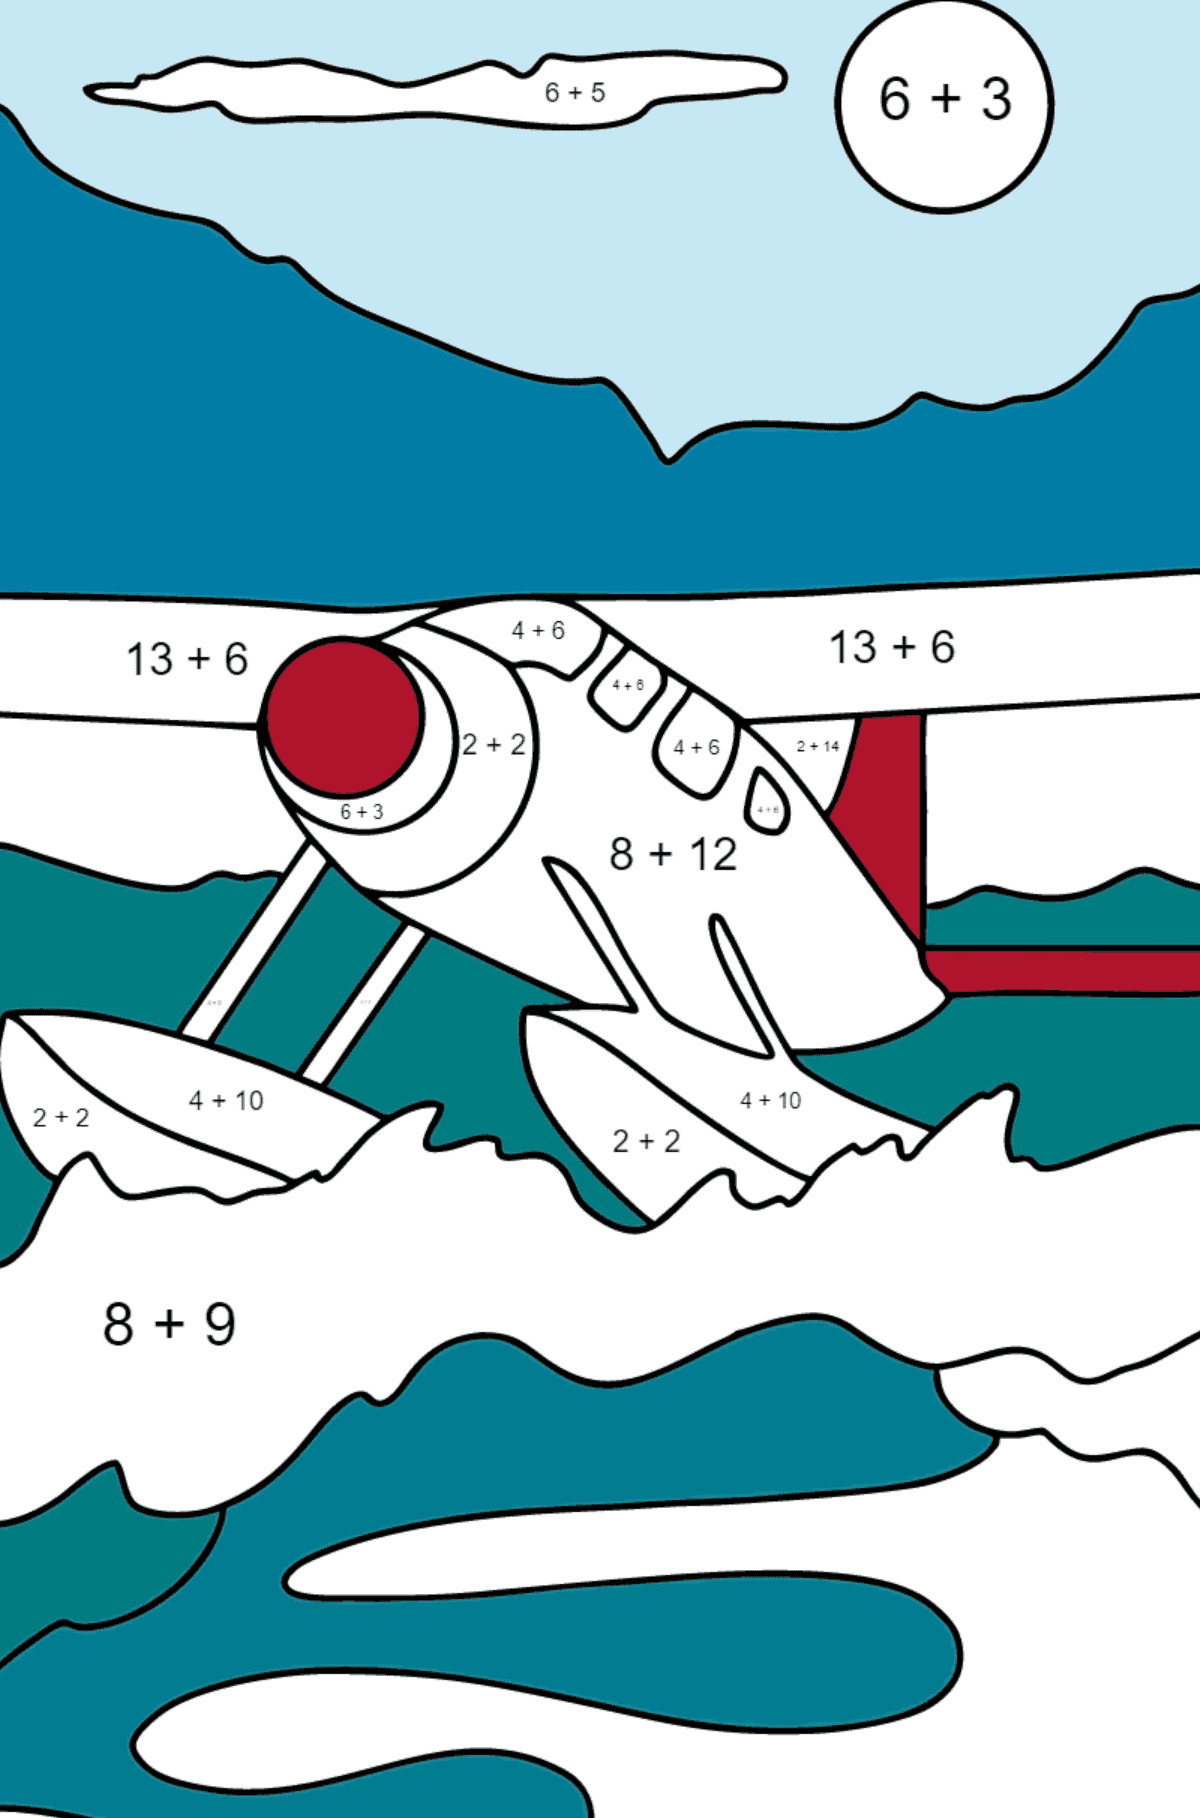 Coloring Page - A Hydroplane - Math Coloring - Addition for Children